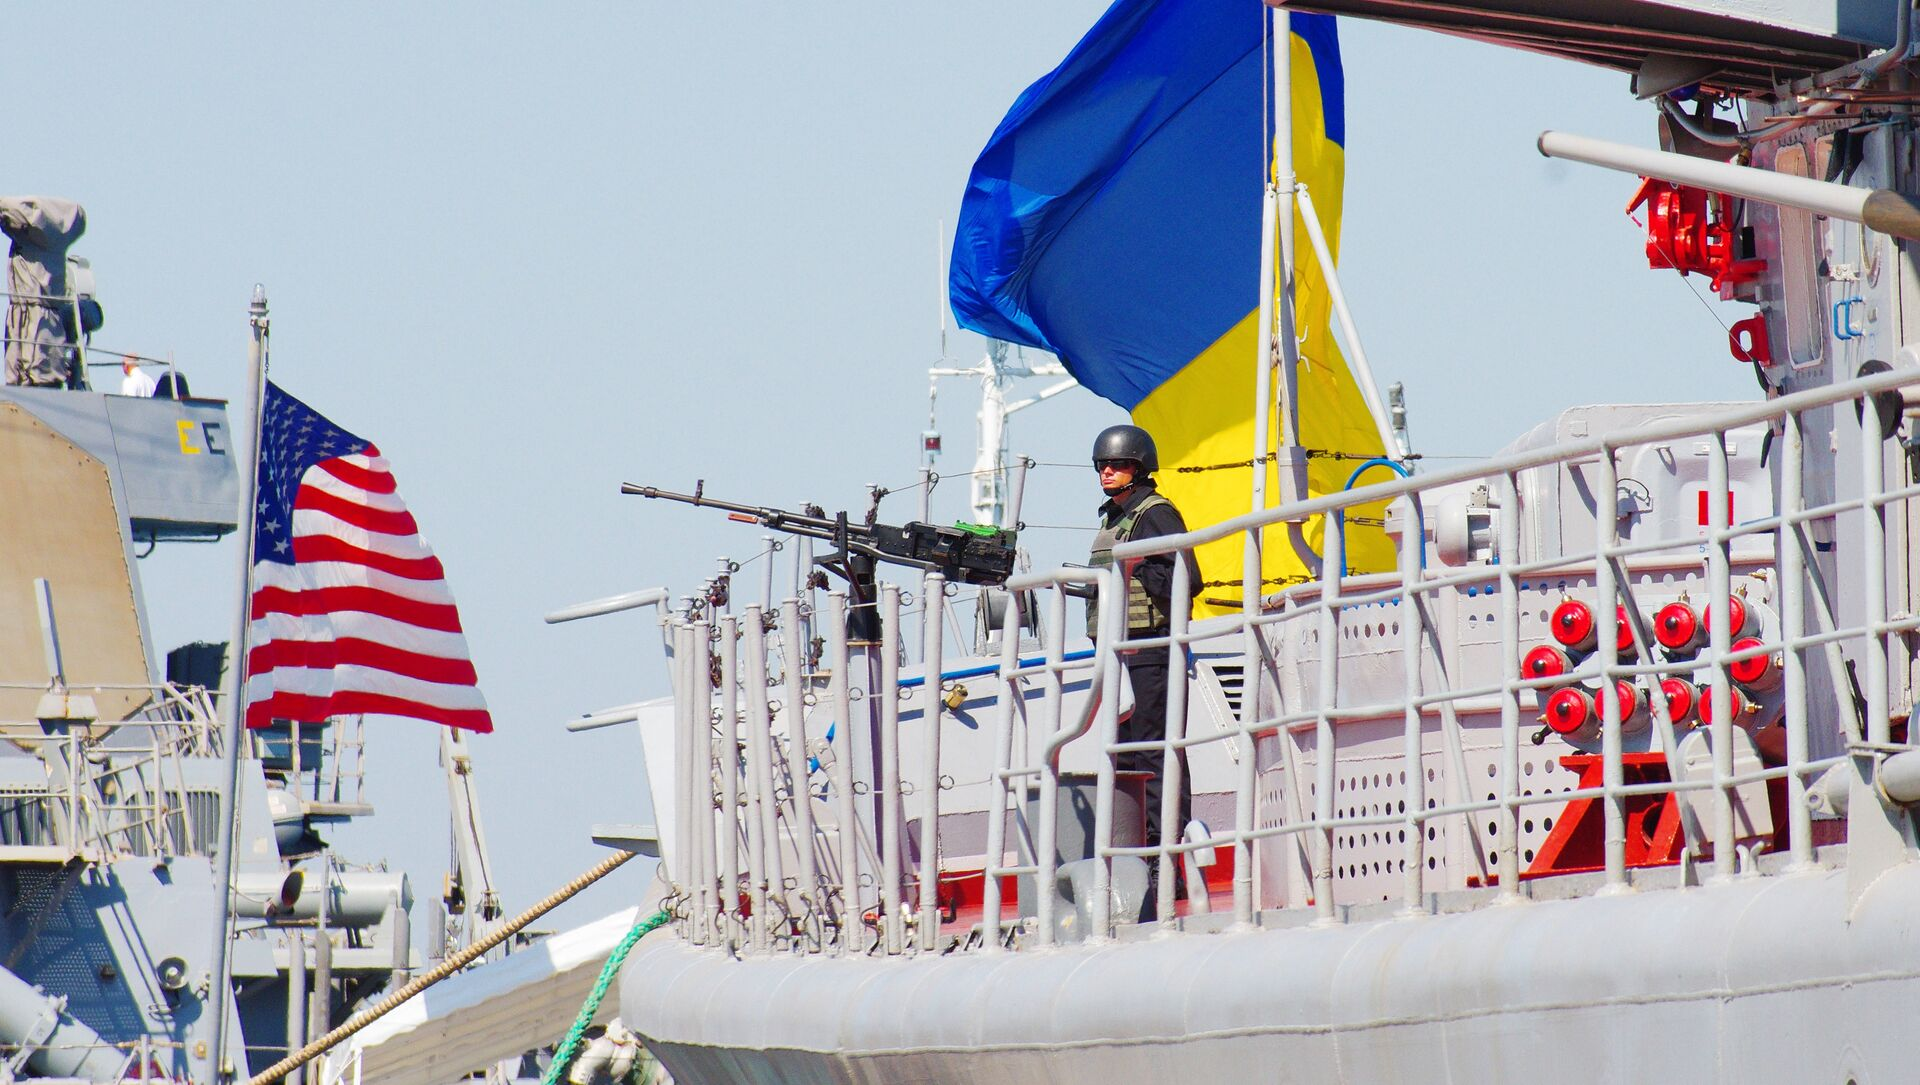 The Ukrainian Navy Hetman Sahaidachnyi frigate (R) and United States Navy missile destroyer Donald Cook (DDG-75) are moored near one another during the international drill Sea Breeze-2015 which officially begins in southern Ukrainian city of Odessa, on September 1, 2015. - Sputnik Türkiye, 1920, 15.07.2021